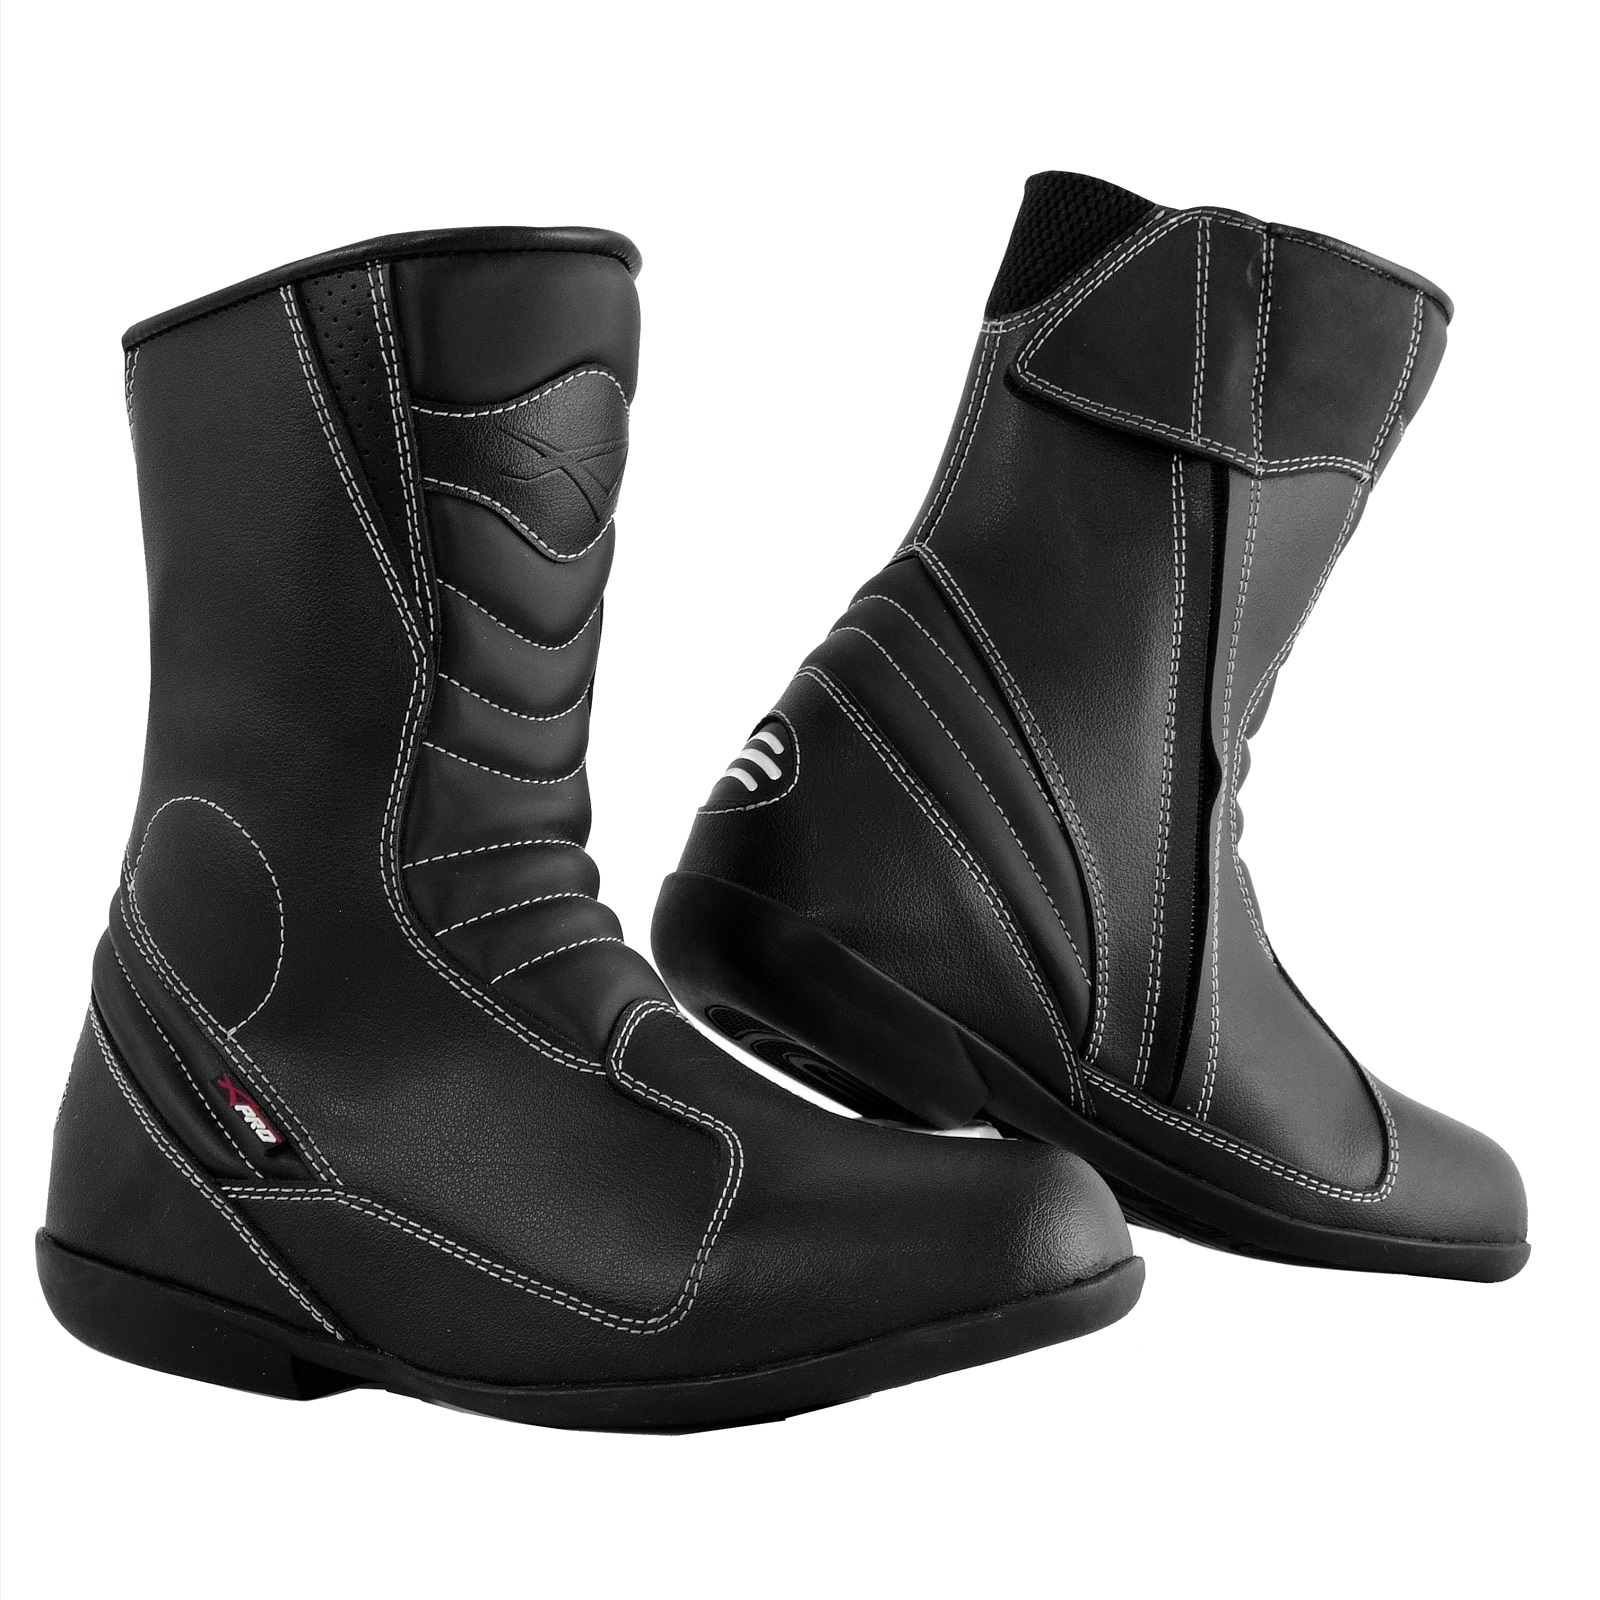 Ladies Motorcycle Boots Leather Motorbike Waterproof Touring Women